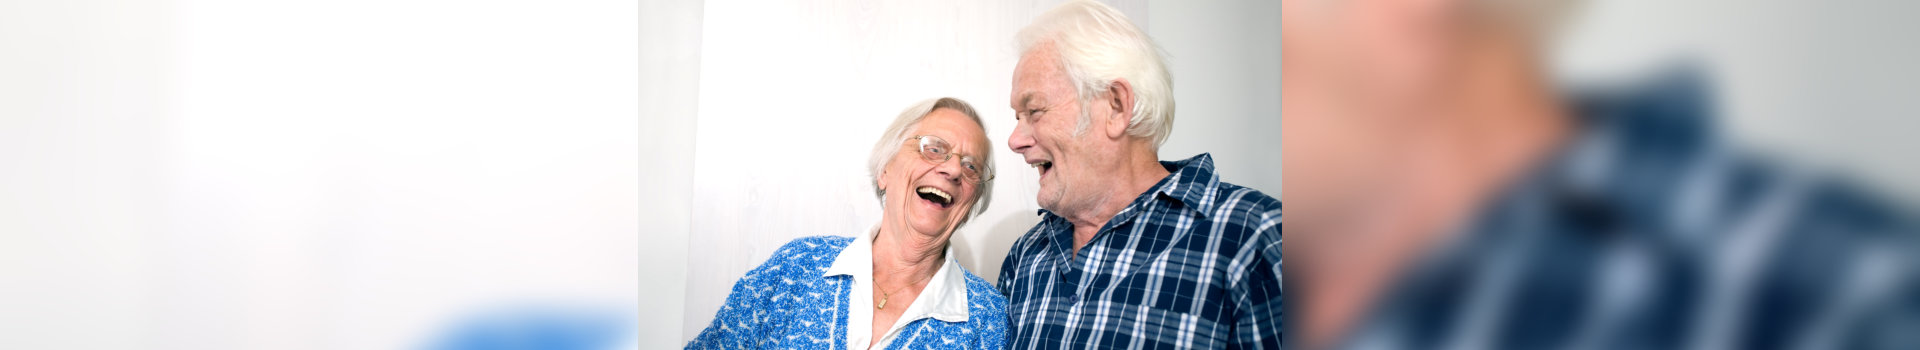 old couple happily talking